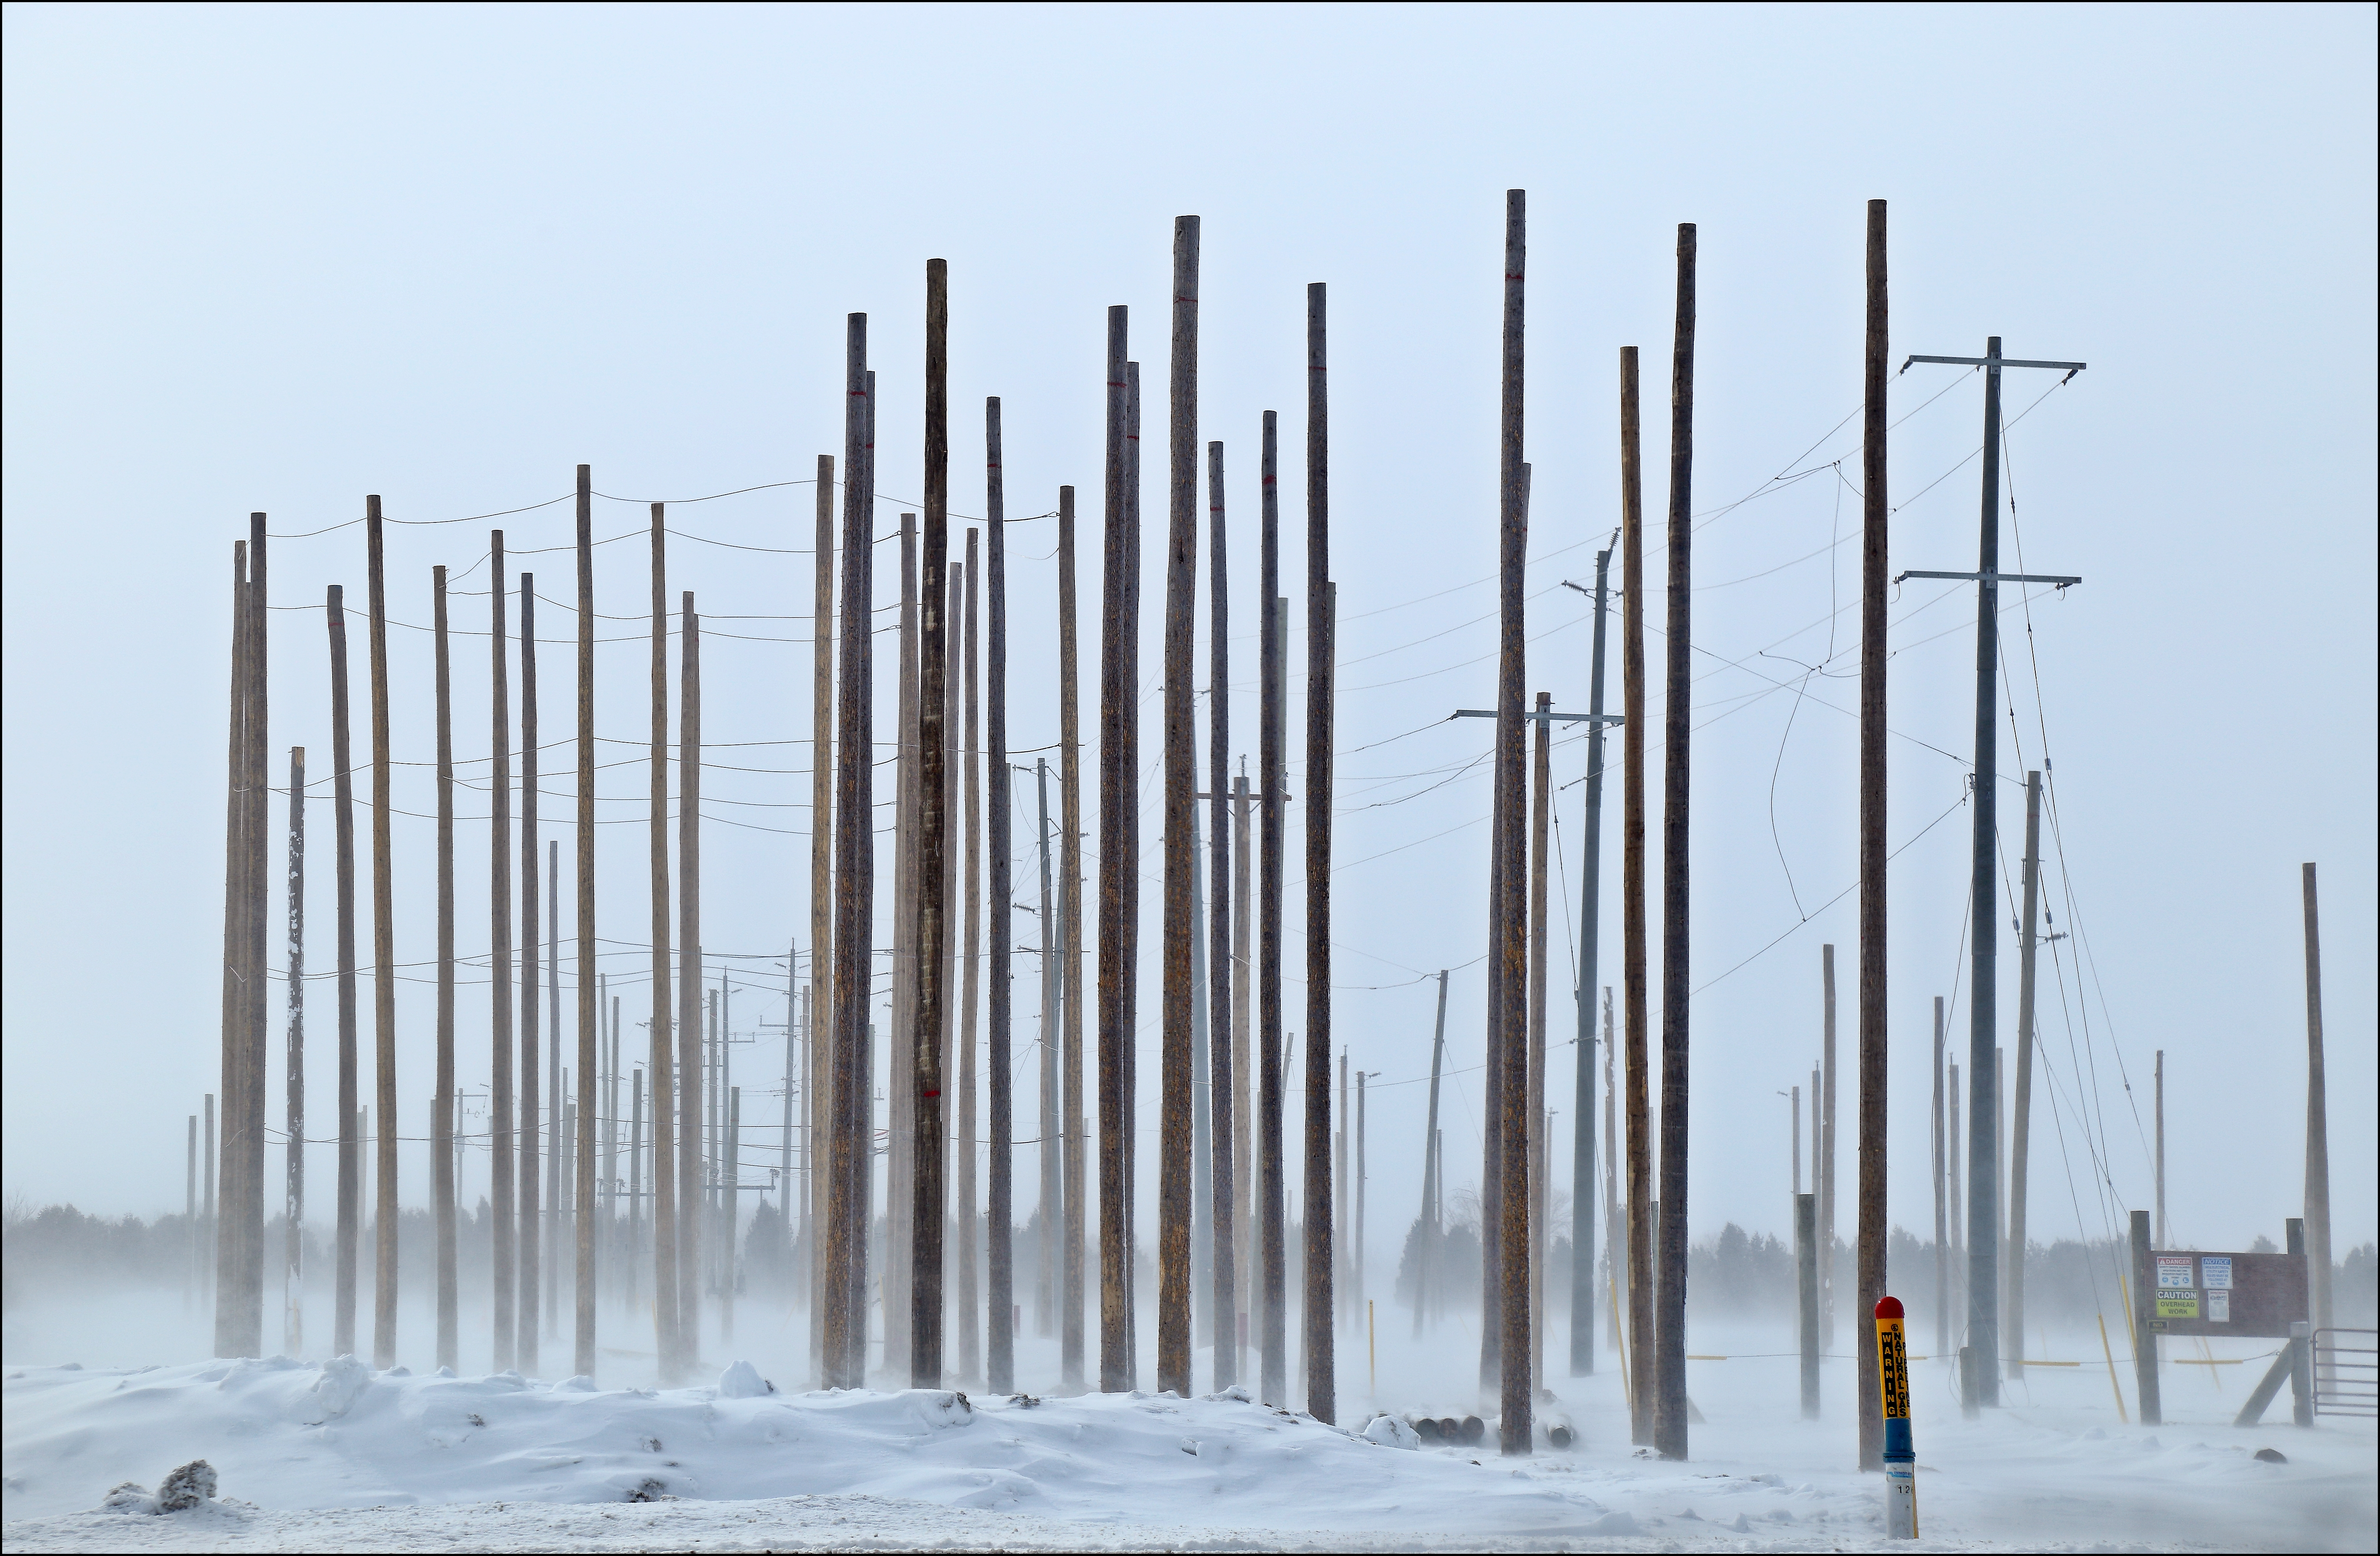 Cold & Windy. canon, hydro, poles, practice, 6d, takenoutthewindow. buy photo